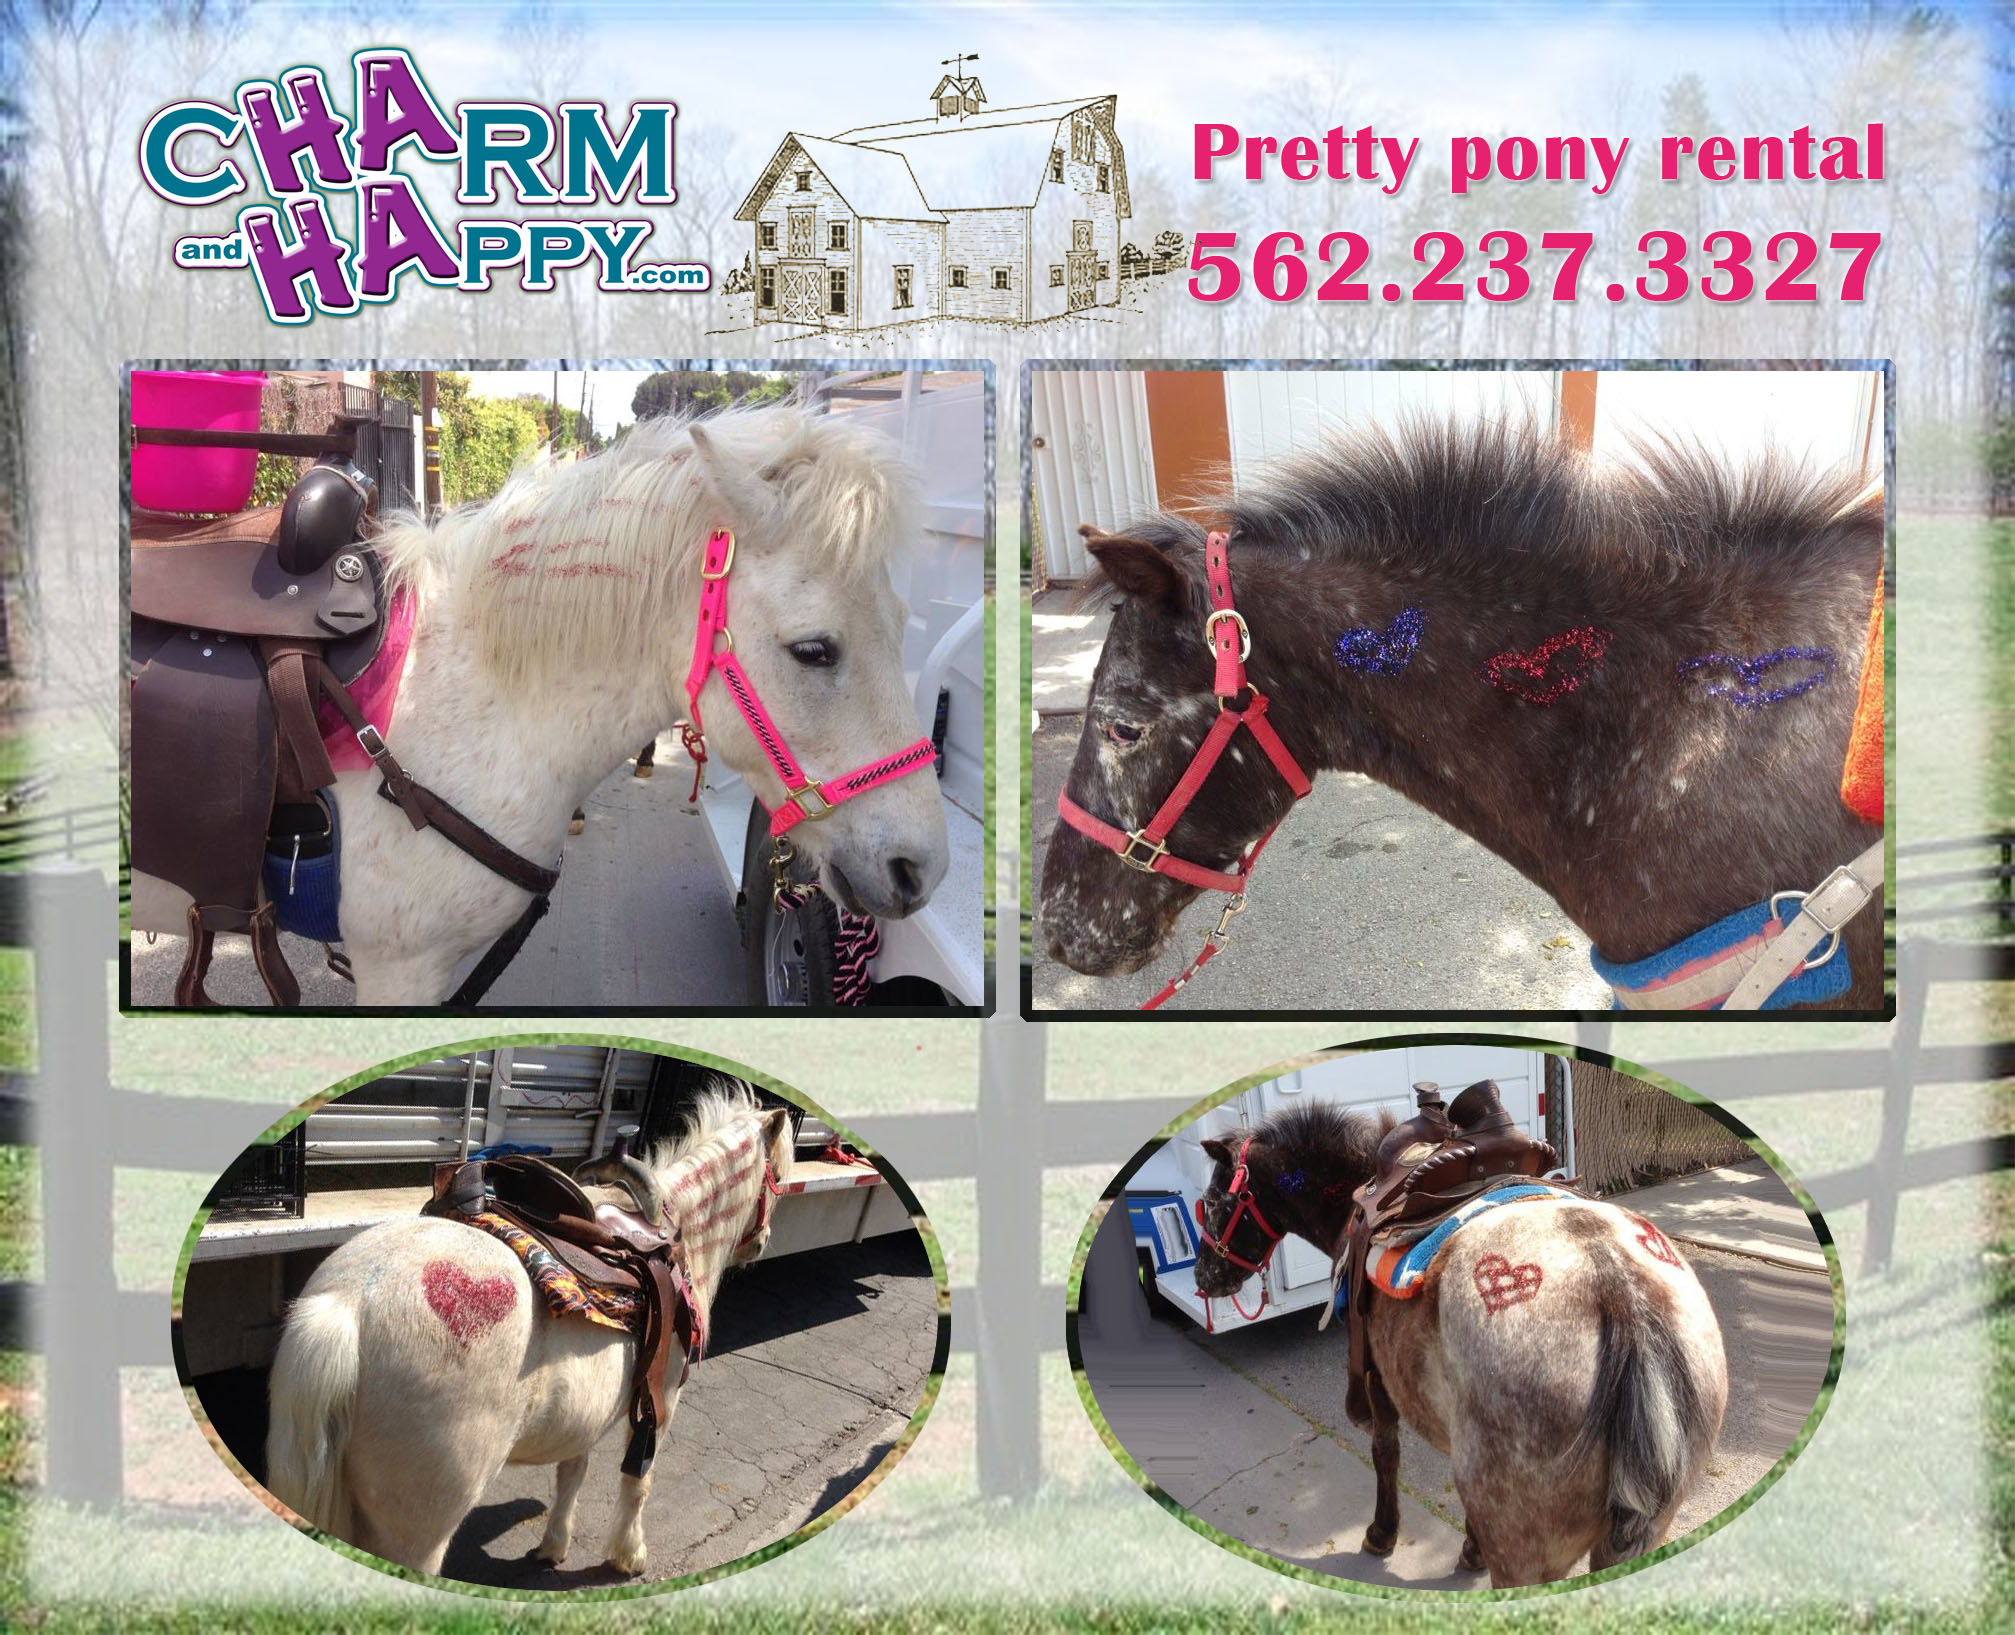 pony rides petting zoo rental los angeles whittier socal charmandhappy carmen tellez year of the horse 2014 party rental